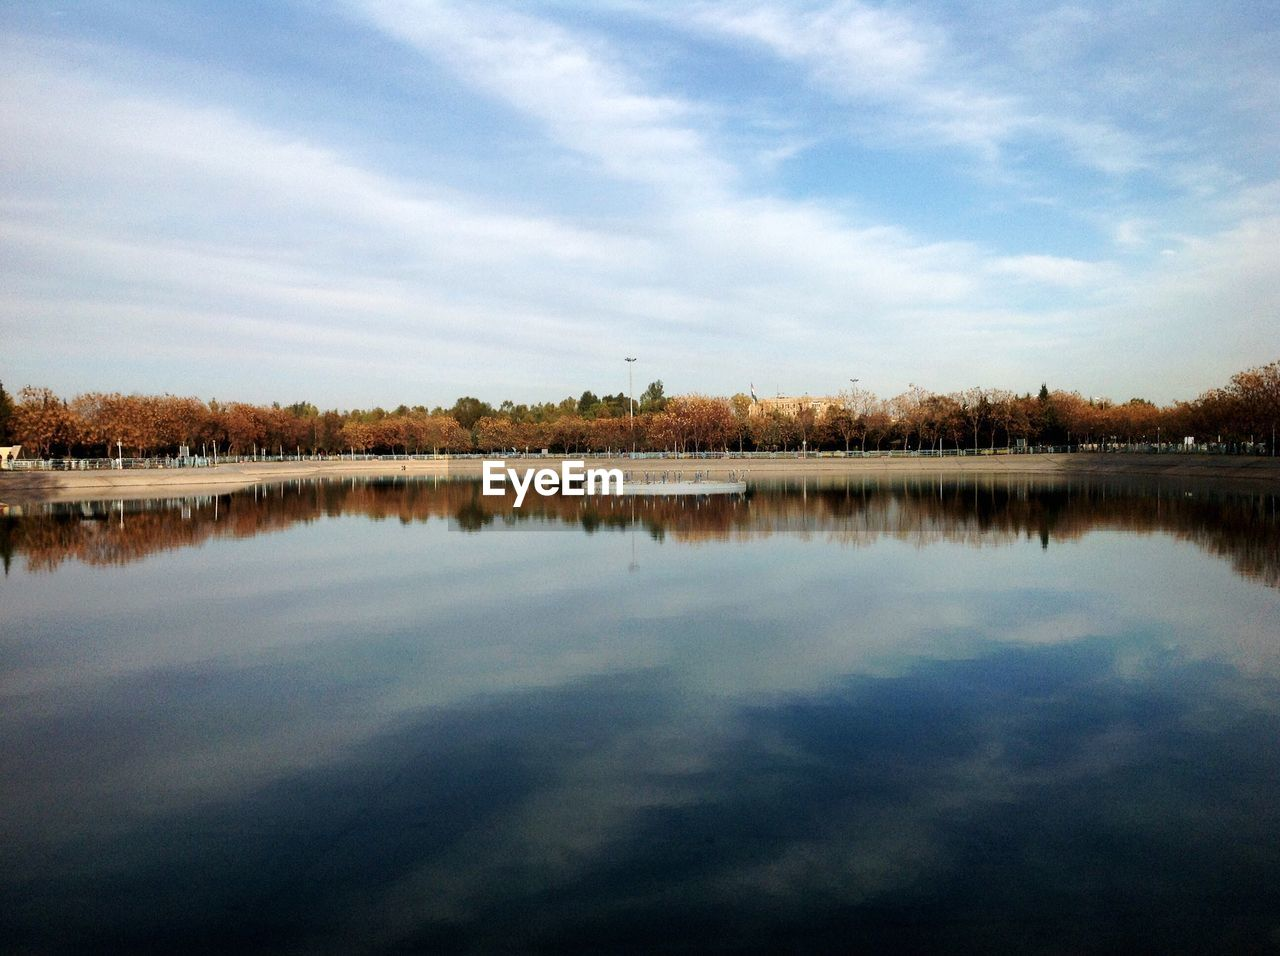 sky, cloud - sky, water, tranquility, lake, reflection, tranquil scene, scenics - nature, beauty in nature, tree, waterfront, nature, no people, plant, day, non-urban scene, idyllic, outdoors